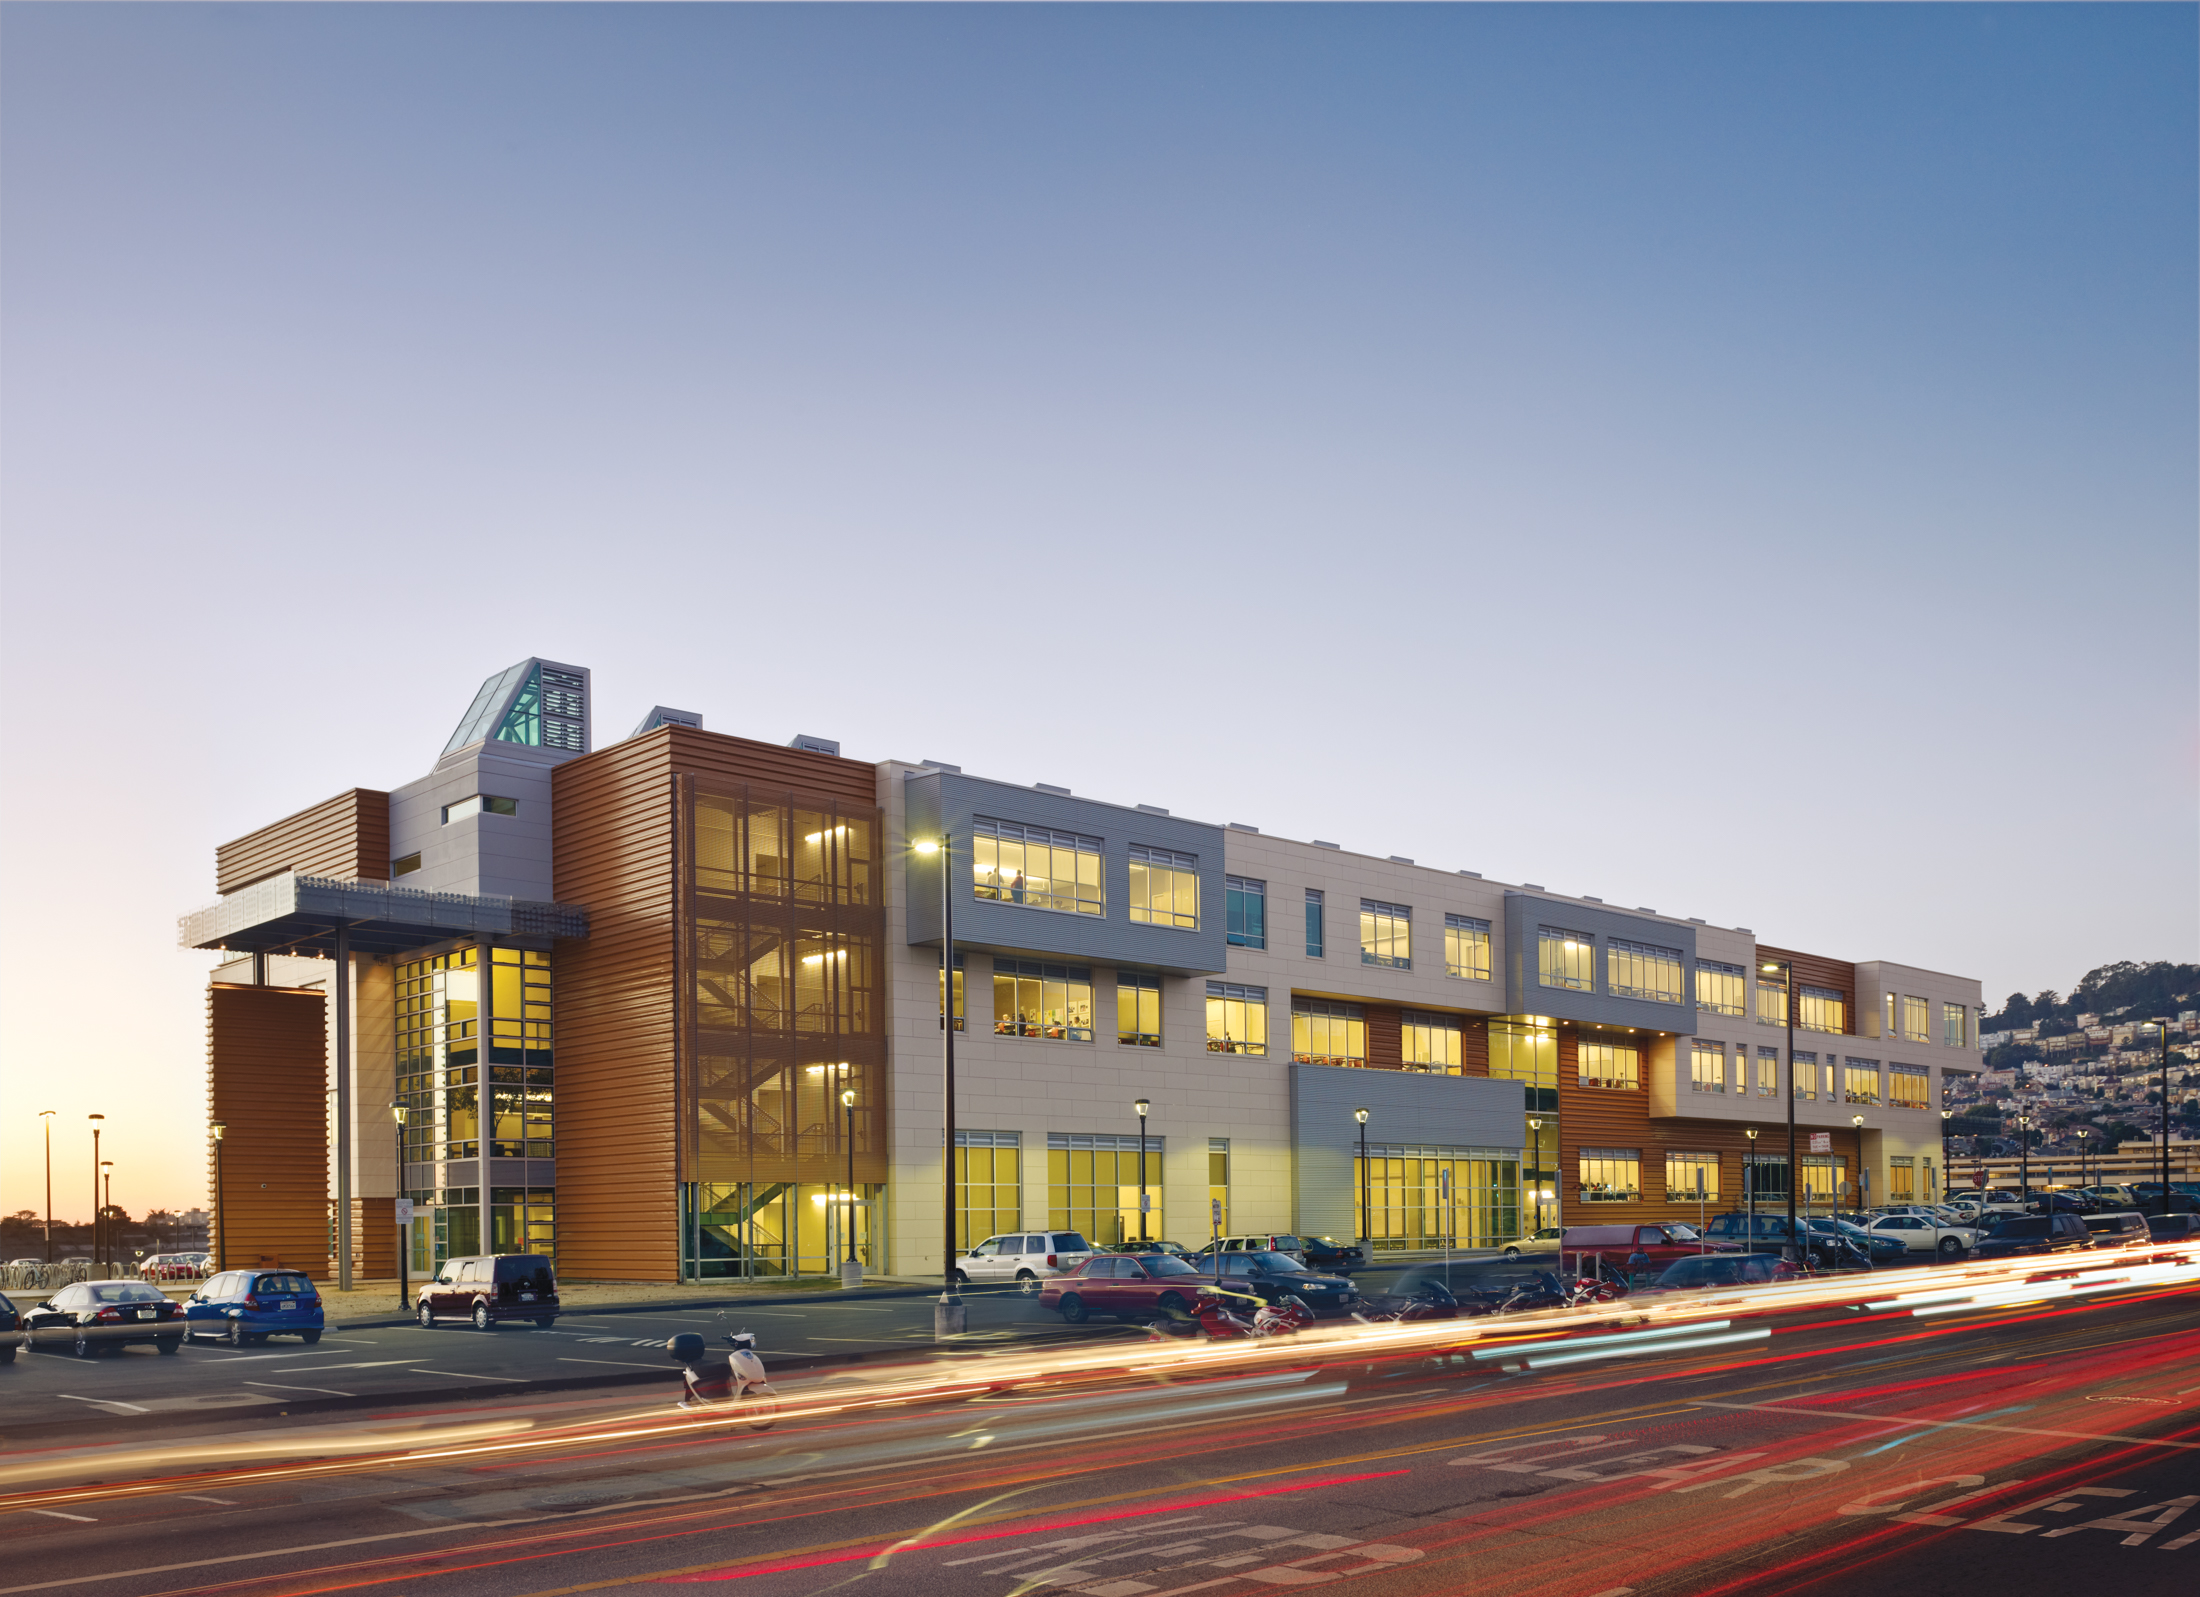 Image of Joint Use Facility, City College of San Francisco